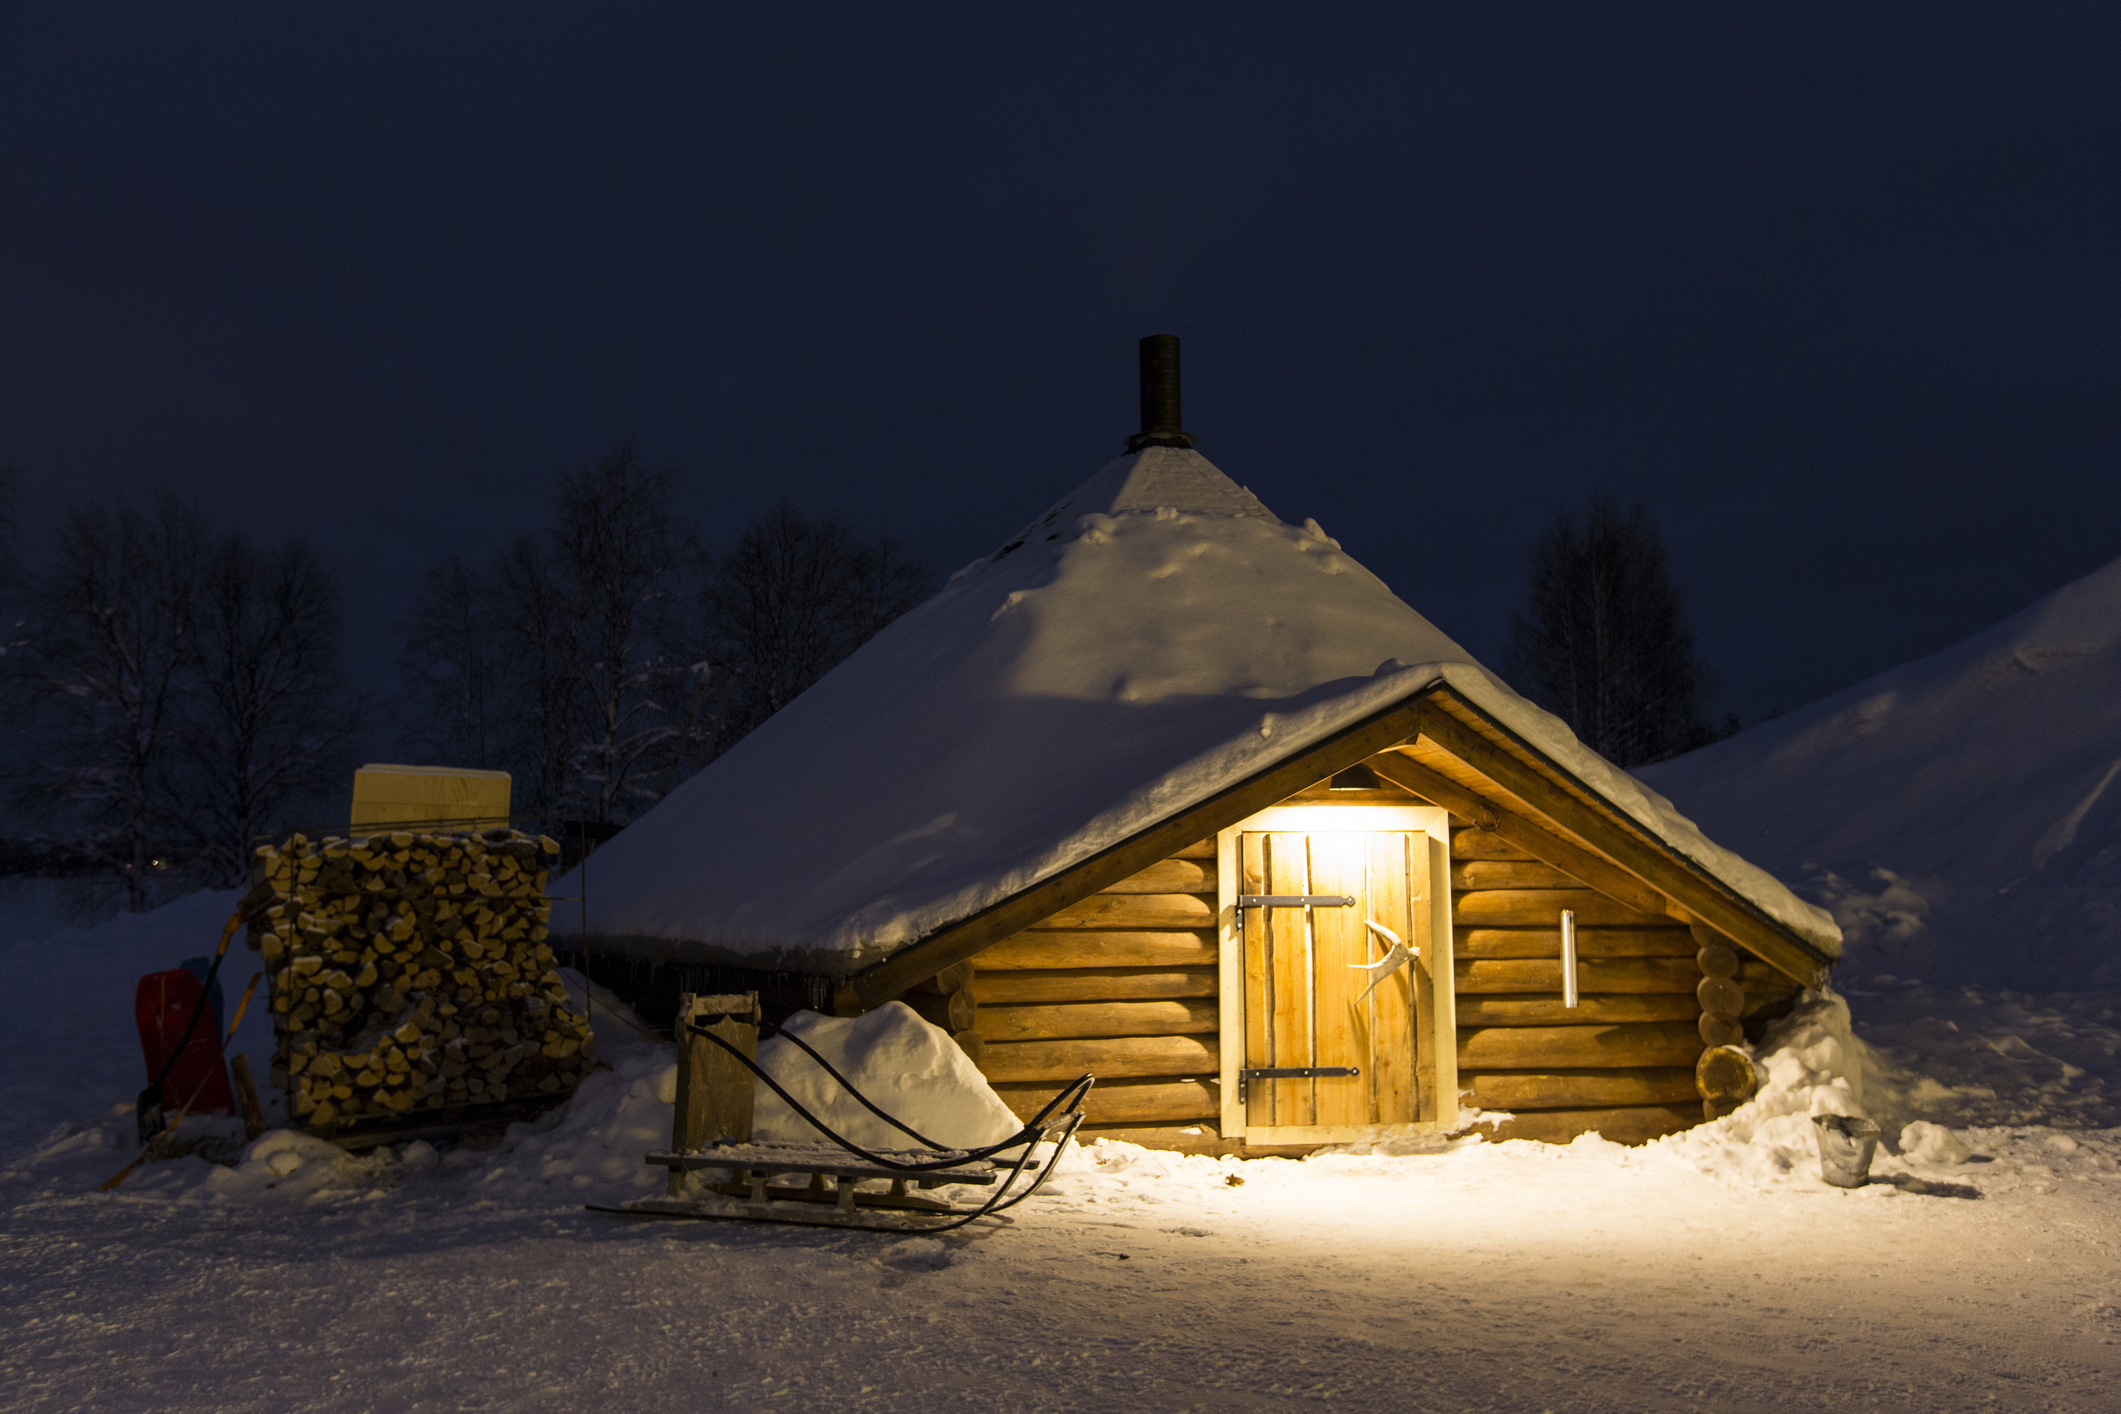 Kota, hut of the Sami people, Sinettä, Lapland, Finland. For security reasons, the location of Shia's cabin has not been released.